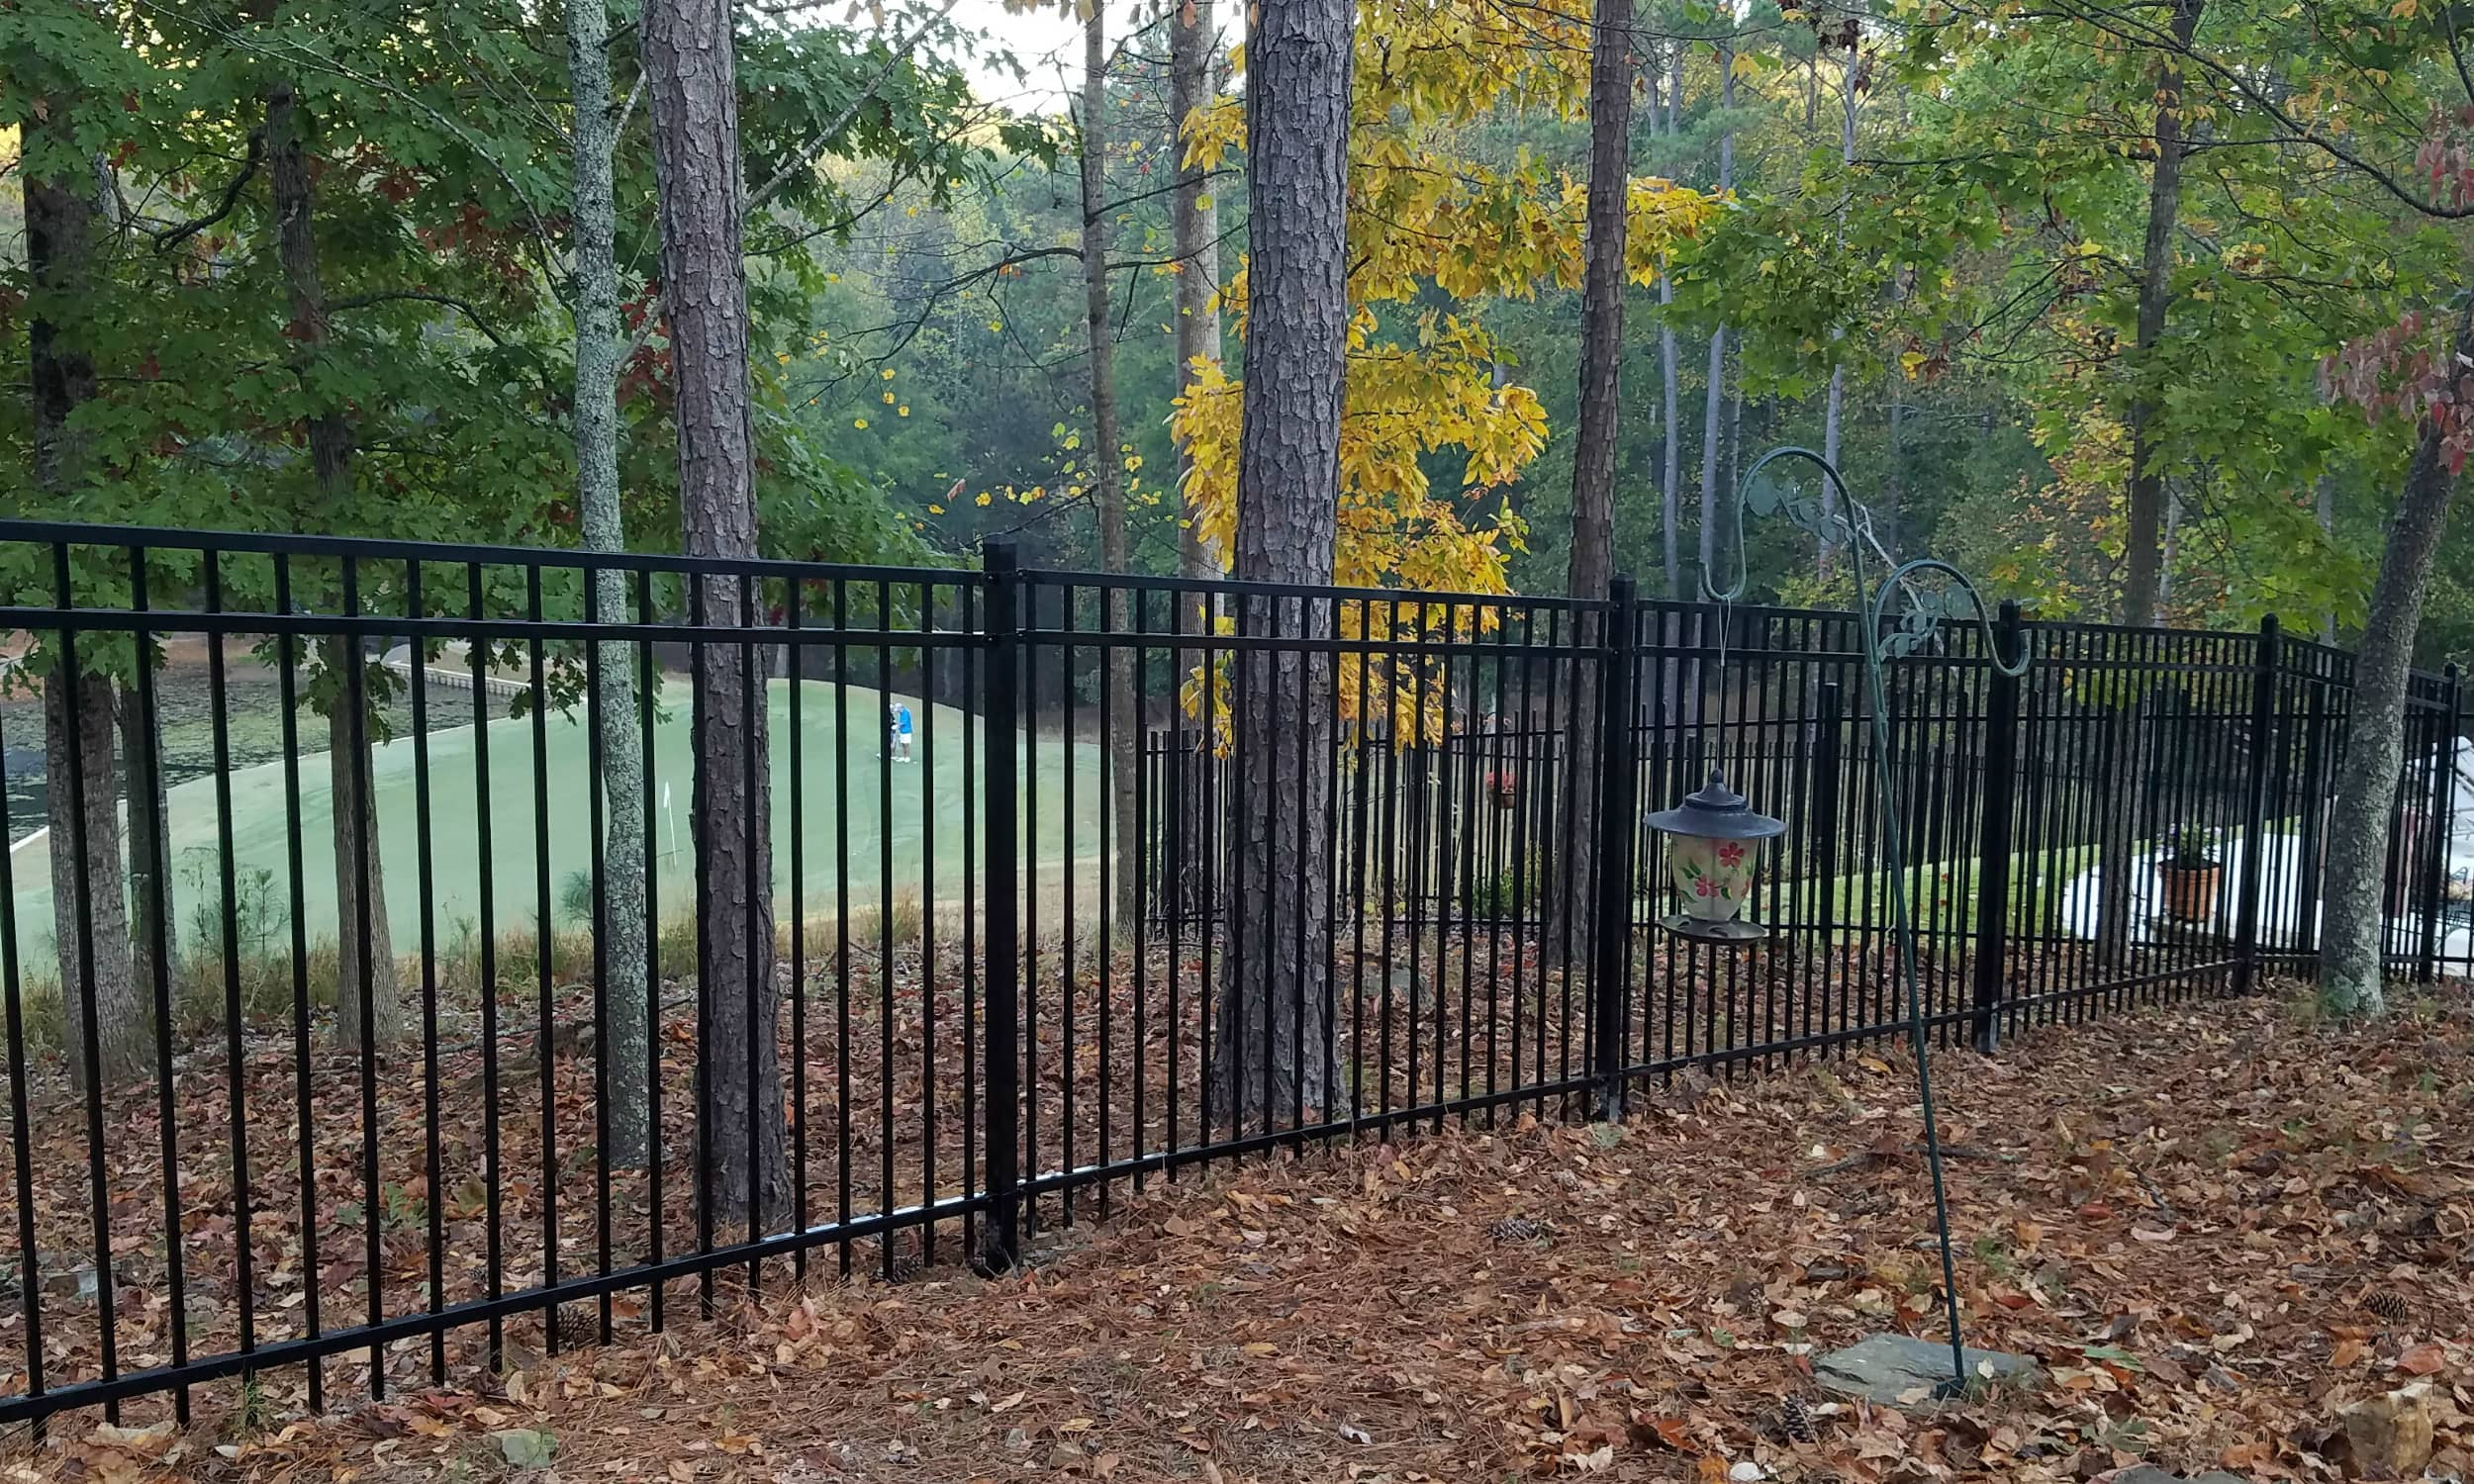 5 Ft Steel Fence with 3 Rails.jpg